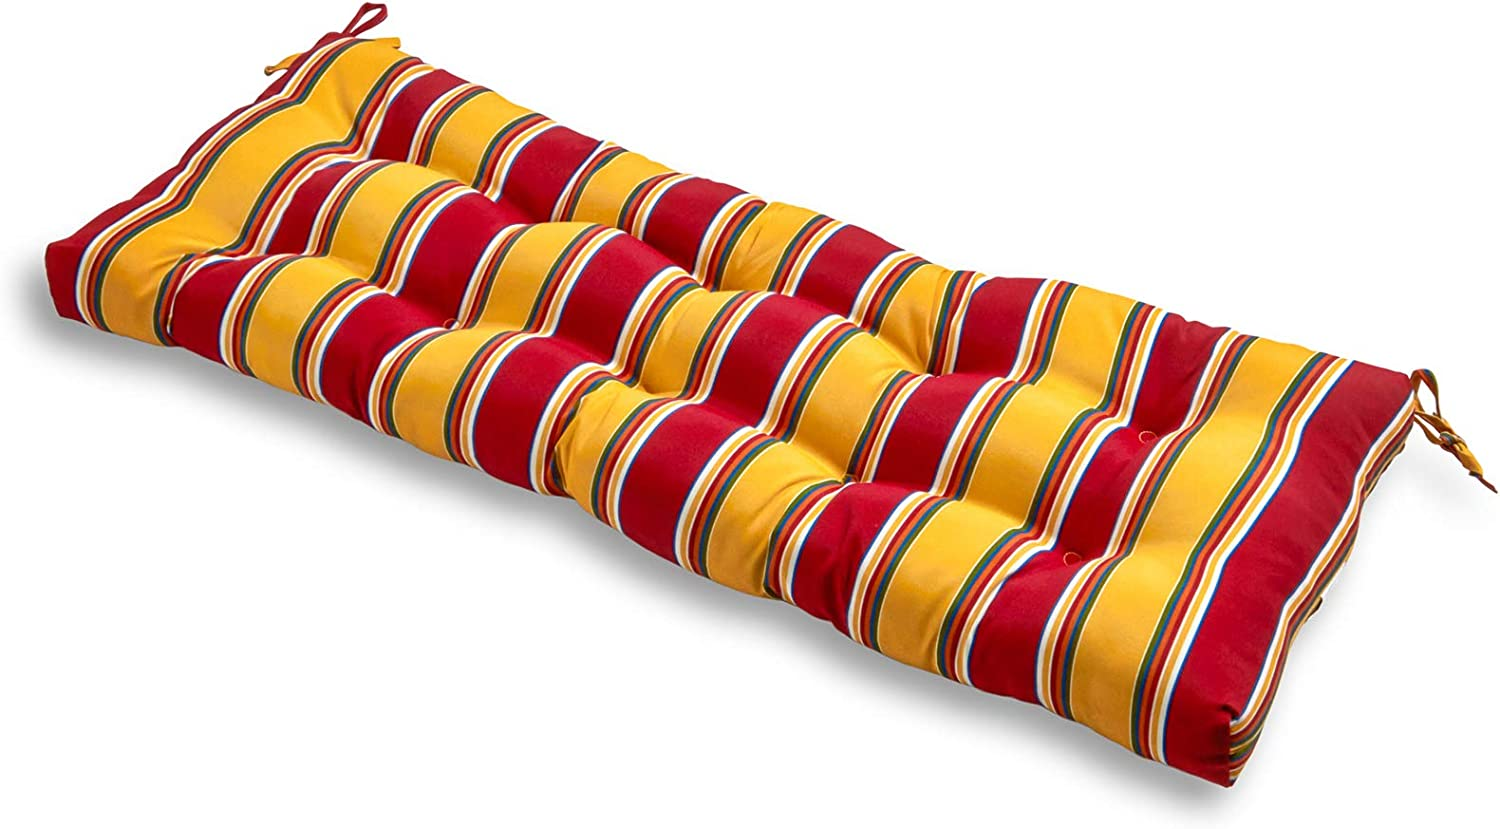 South Pine Porch AM4805-CARNIVAL Carnival Stripe 44-inch Outdoor Swing/Bench Cushion